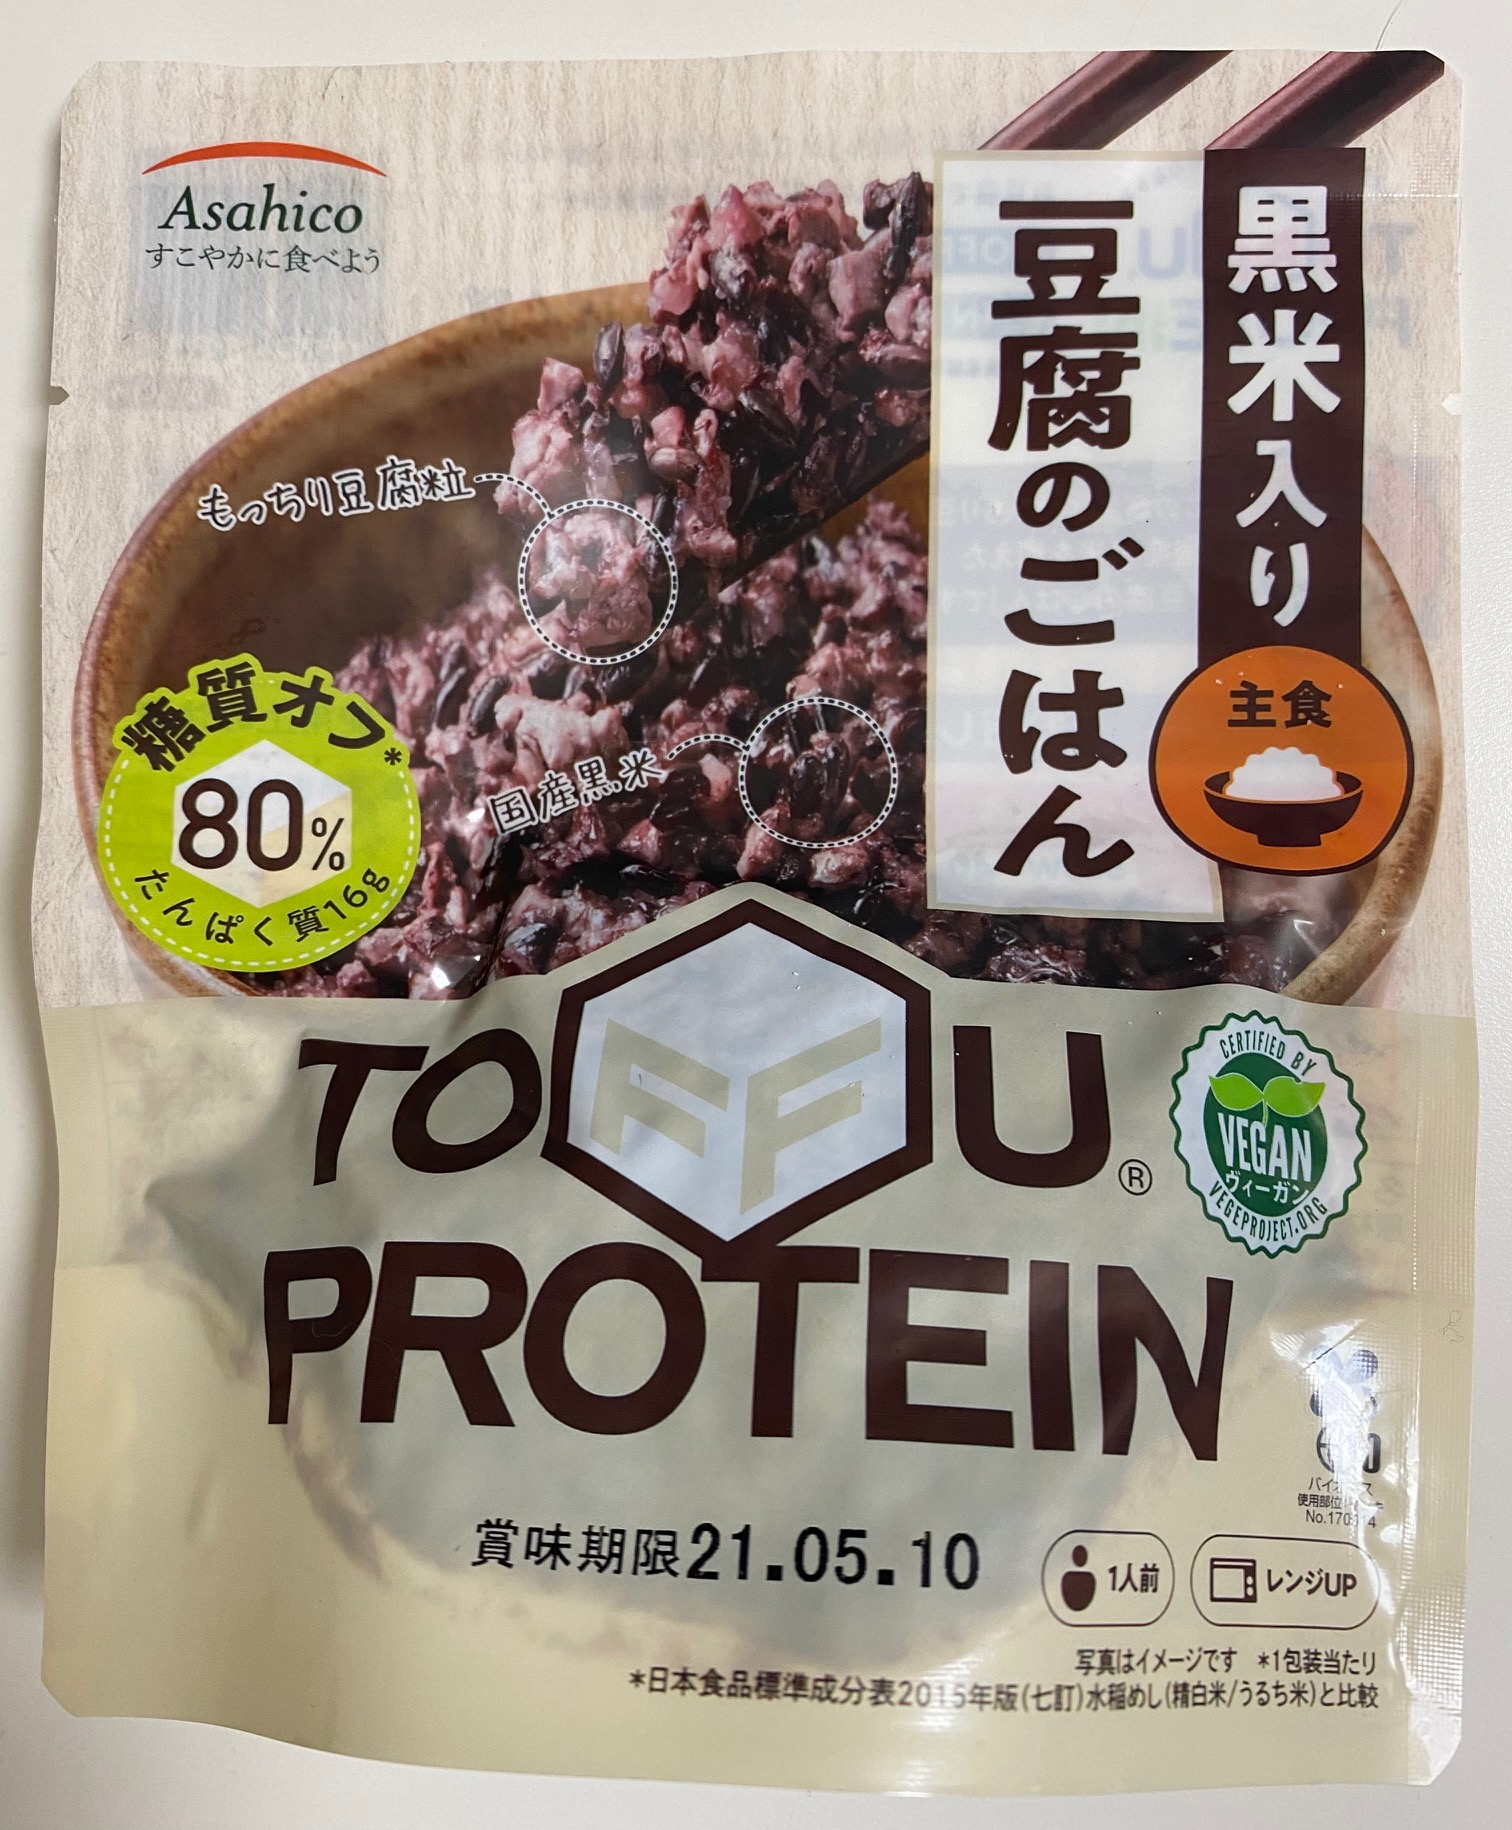 Asahico toffu protein tofu rice with black rice